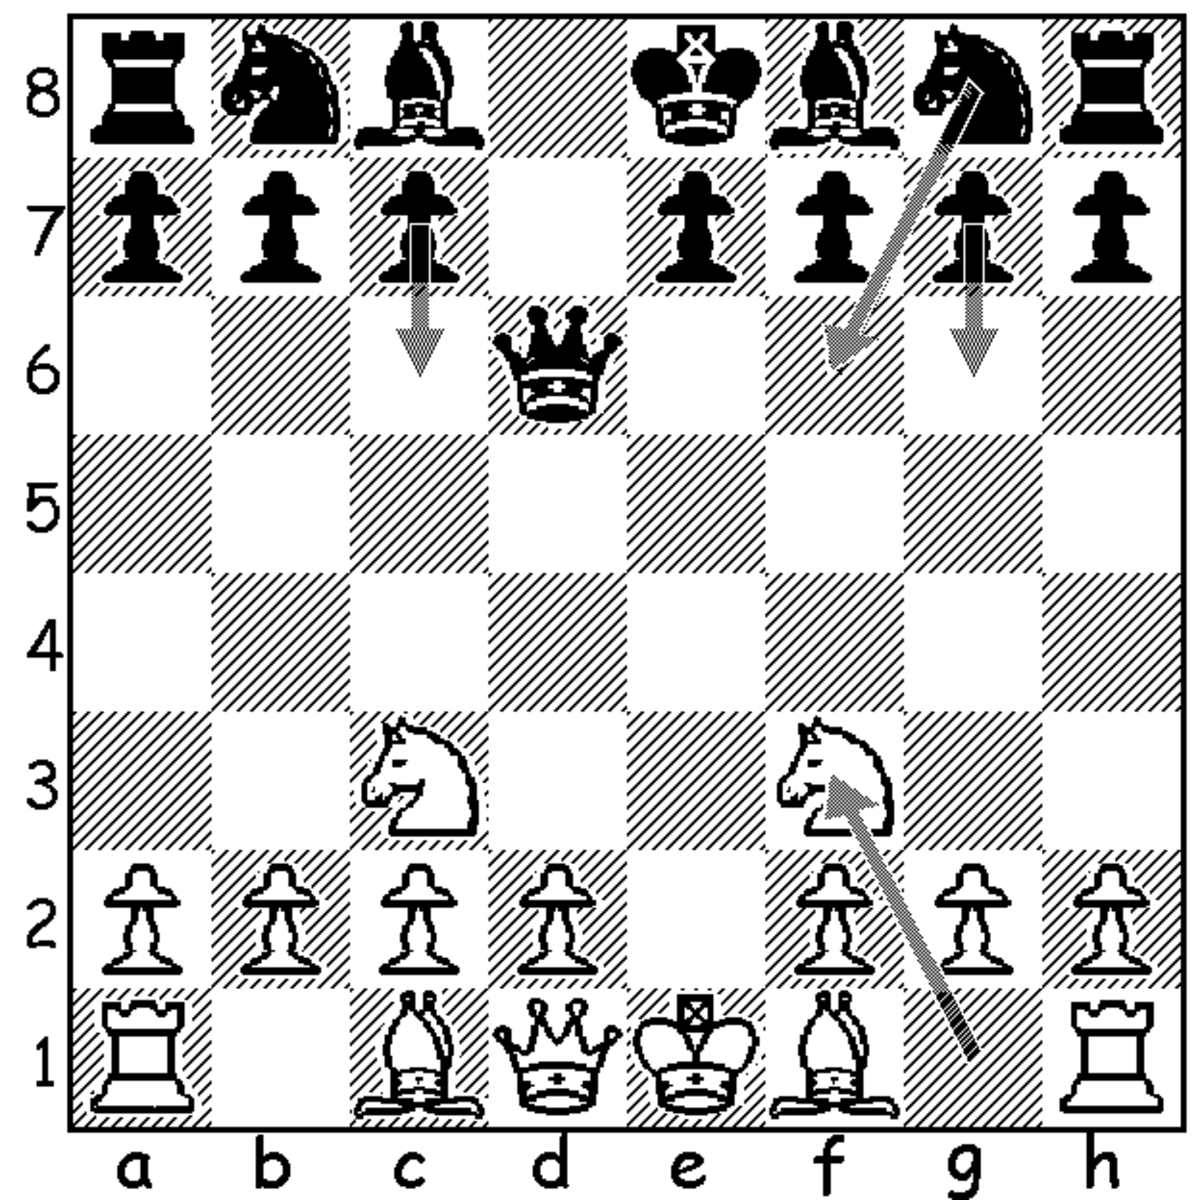 chess-openings-a-simple-and-complete-repertoire-for-white-against-the-scandinavian-center-counter-defense